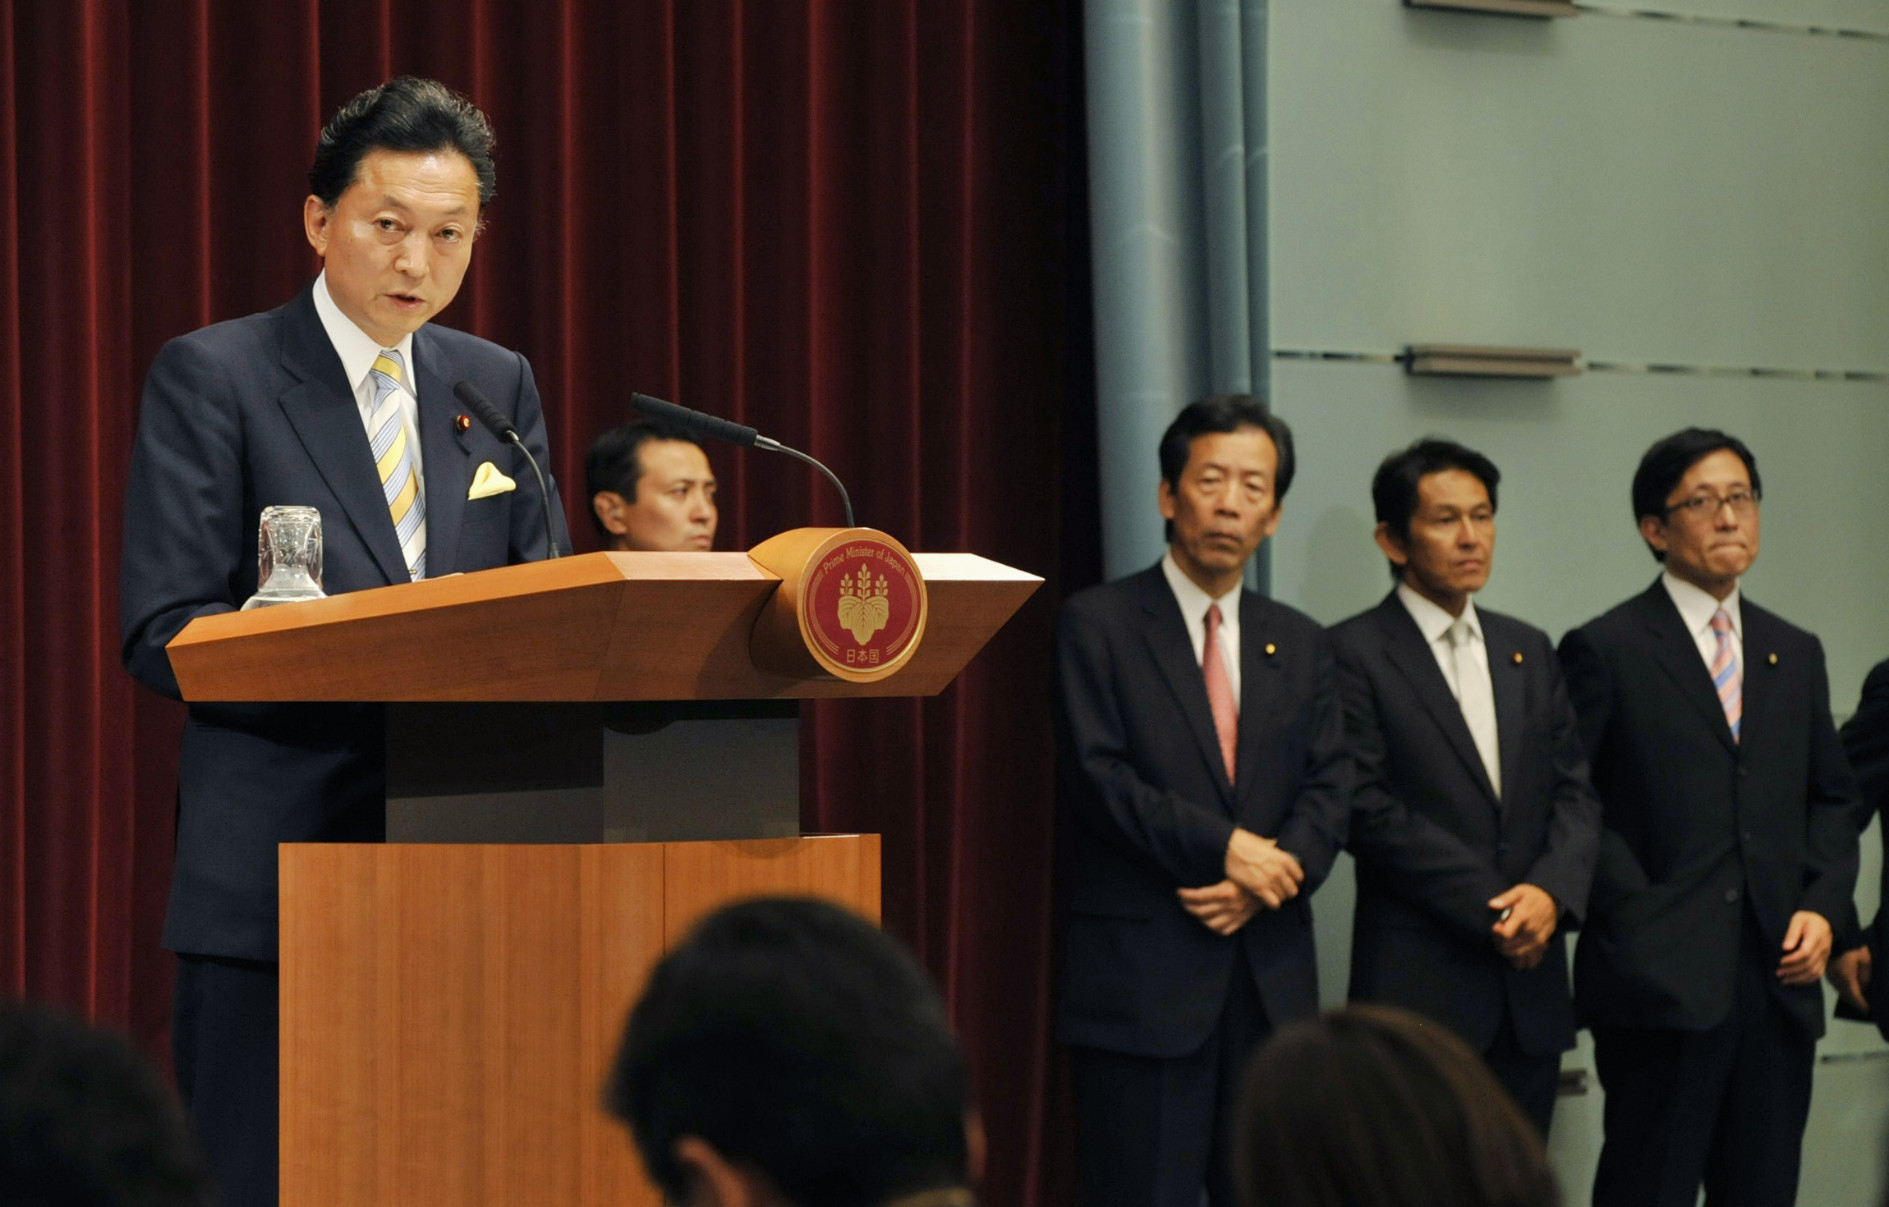 Prime Minister Yukio Hatoyama, leader of the now-defunct Democratic Party of Japan, speaks at a news conference at the Prime Minister's Office on Sept. 16, 2009, the first day of his administration. | KYODO